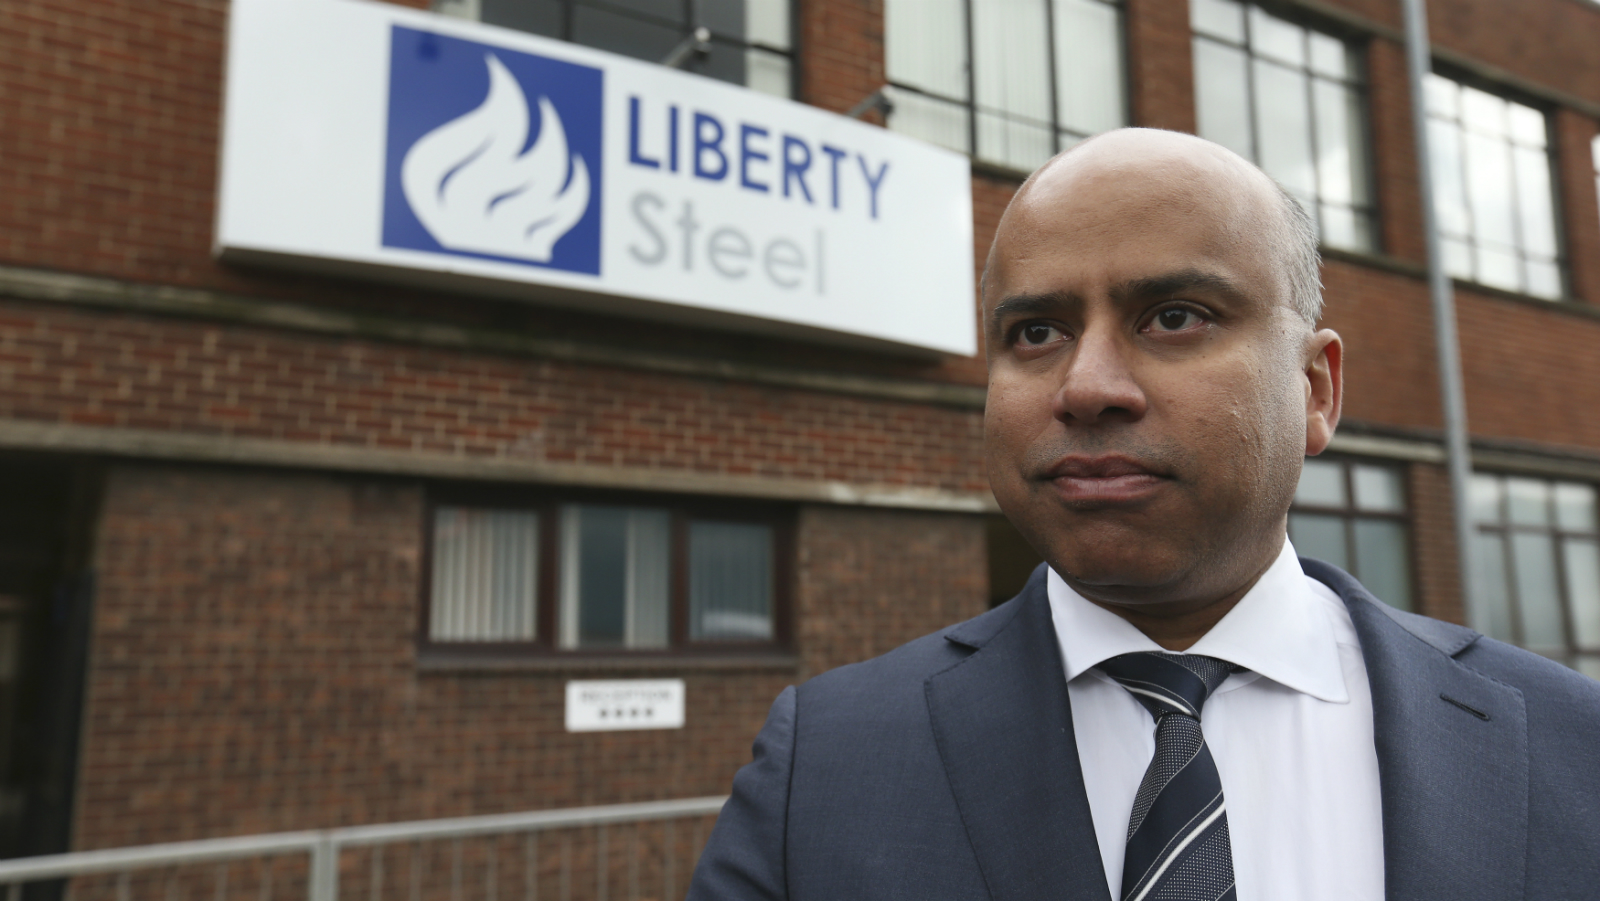 Liberty Steel boss Sanjeev Gupta stands outside steel pressing mill in Dalzell after completing its purchase, Scotland, Britain April 8, 2016.